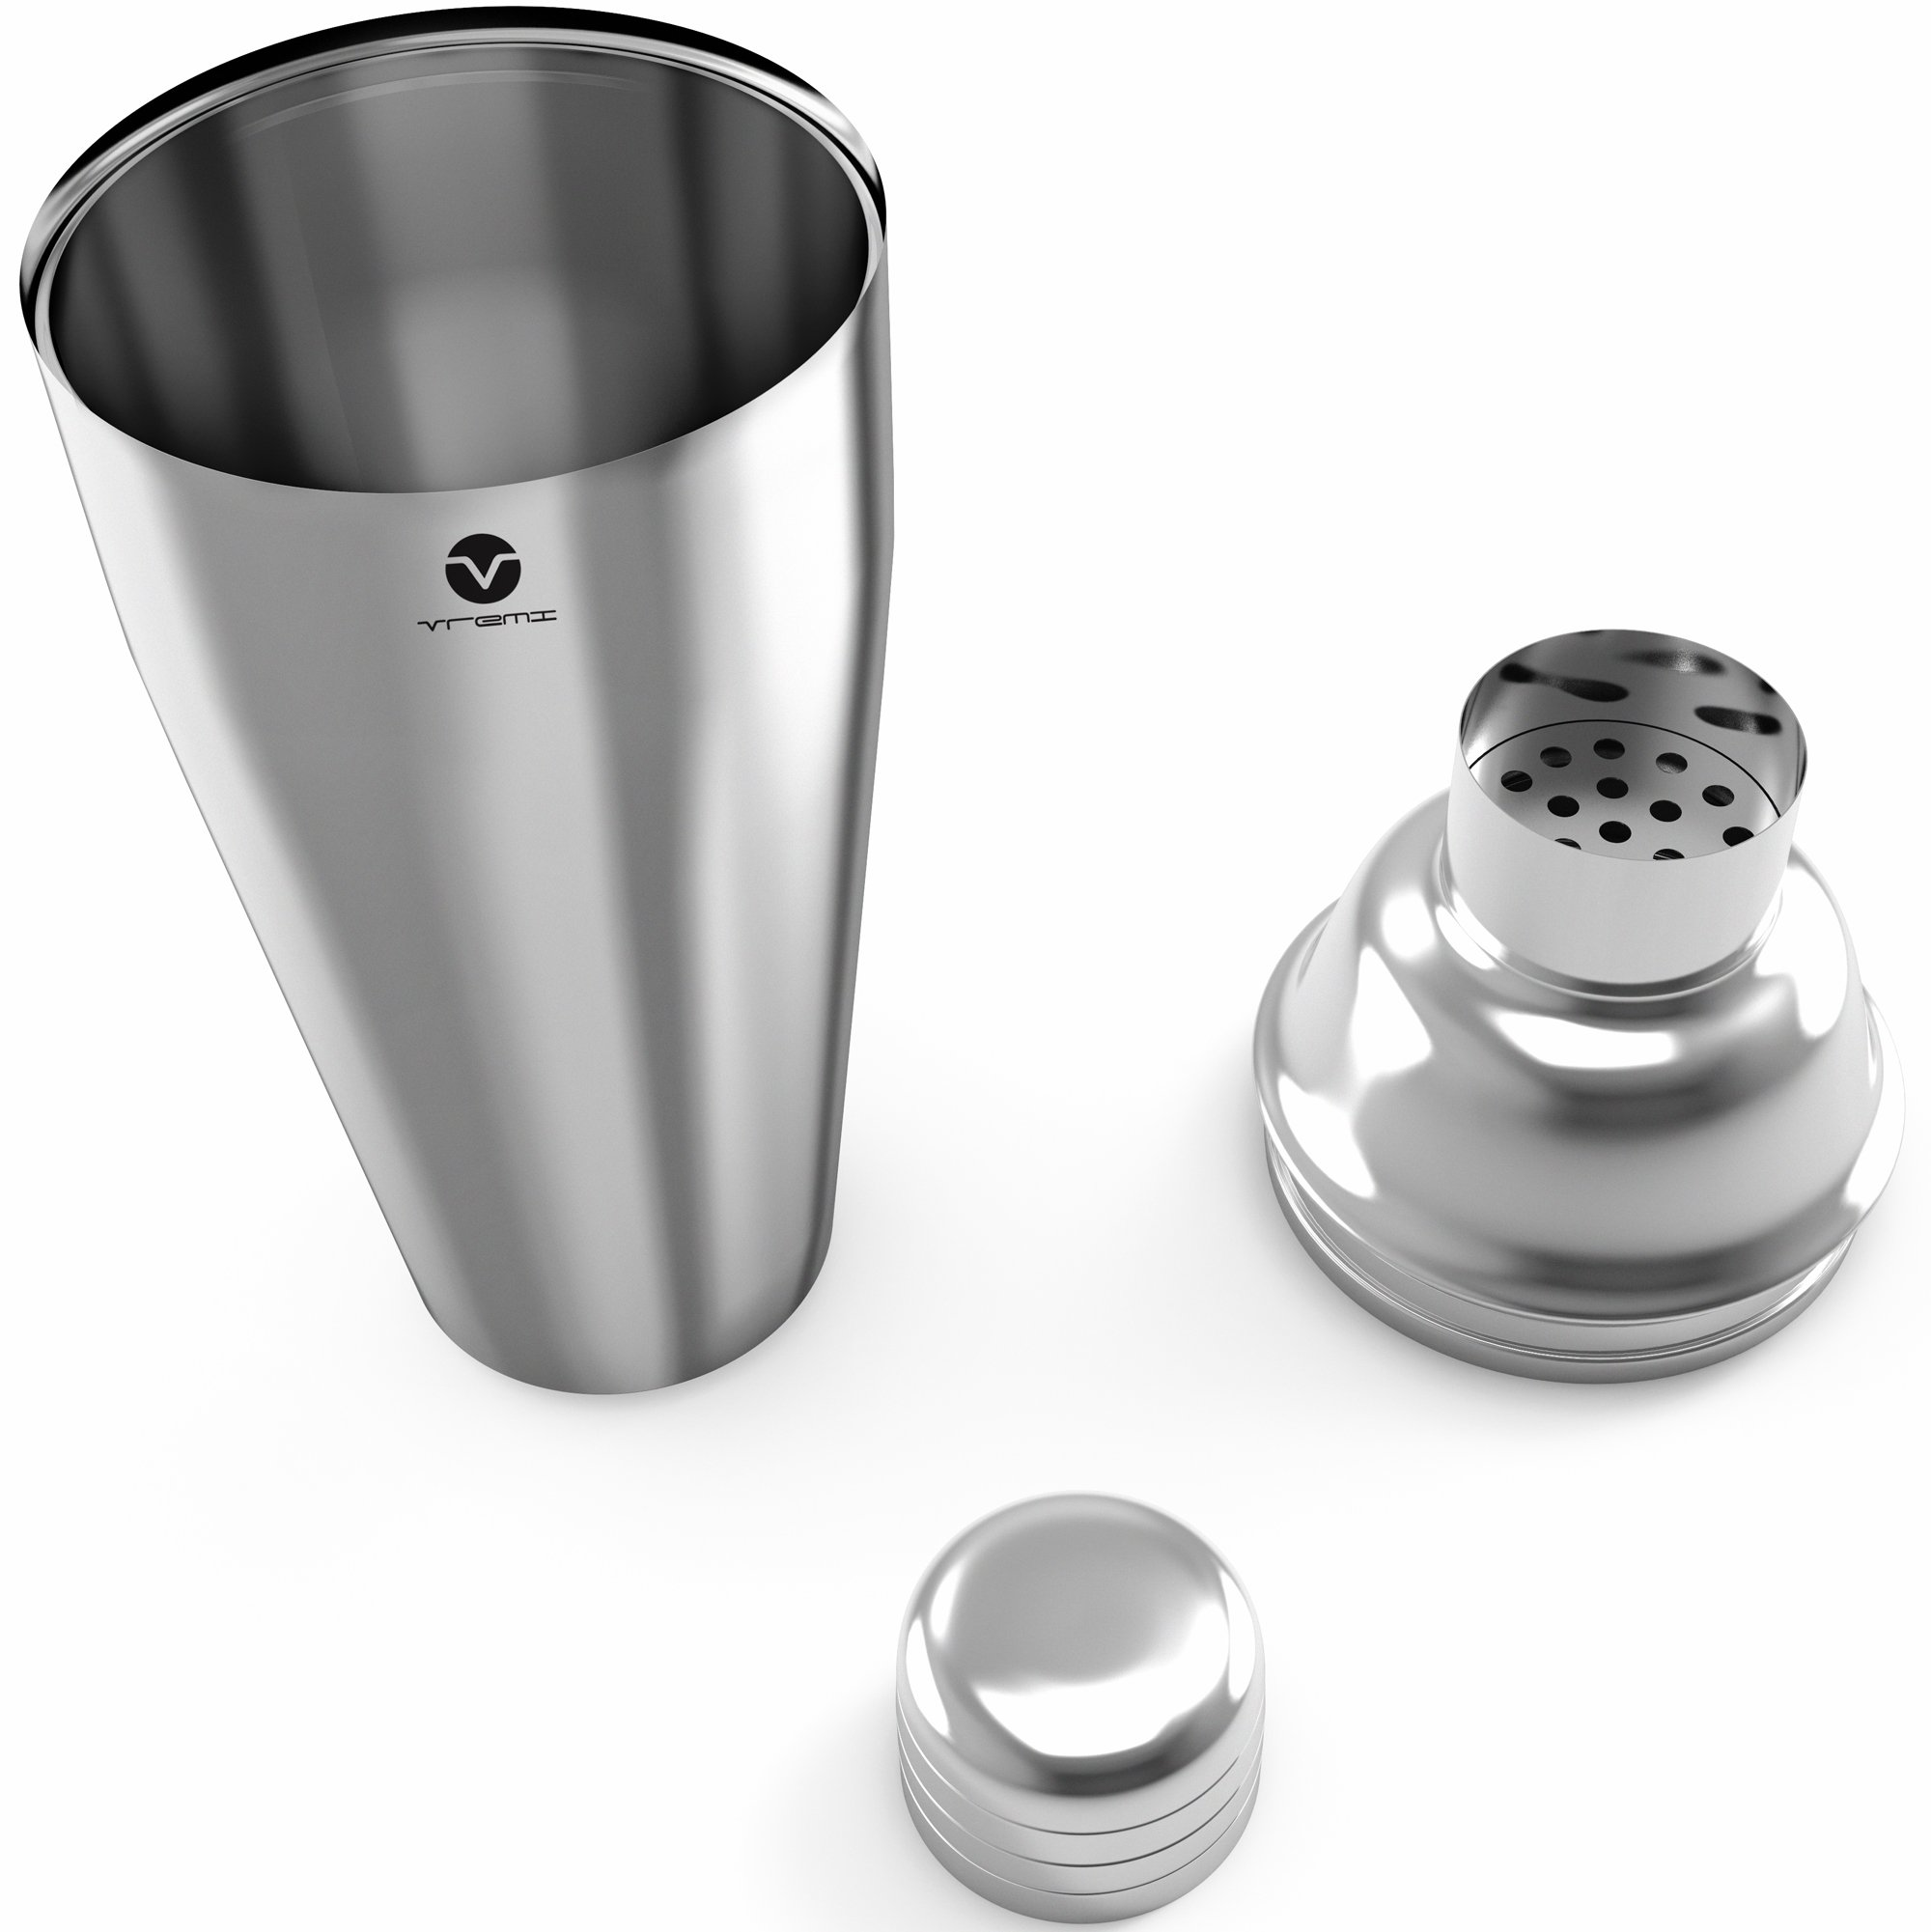 Vremi Stainless Steel Cocktail Shaker Set - 5 Piece Bartender Kit with Martini Shaker Strainer Jigger Shot Glass Stirring Spoon - Bartending Supplies Bar Tools Barware and Bartender Gifts Set - Silver by Vremi (Image #2)